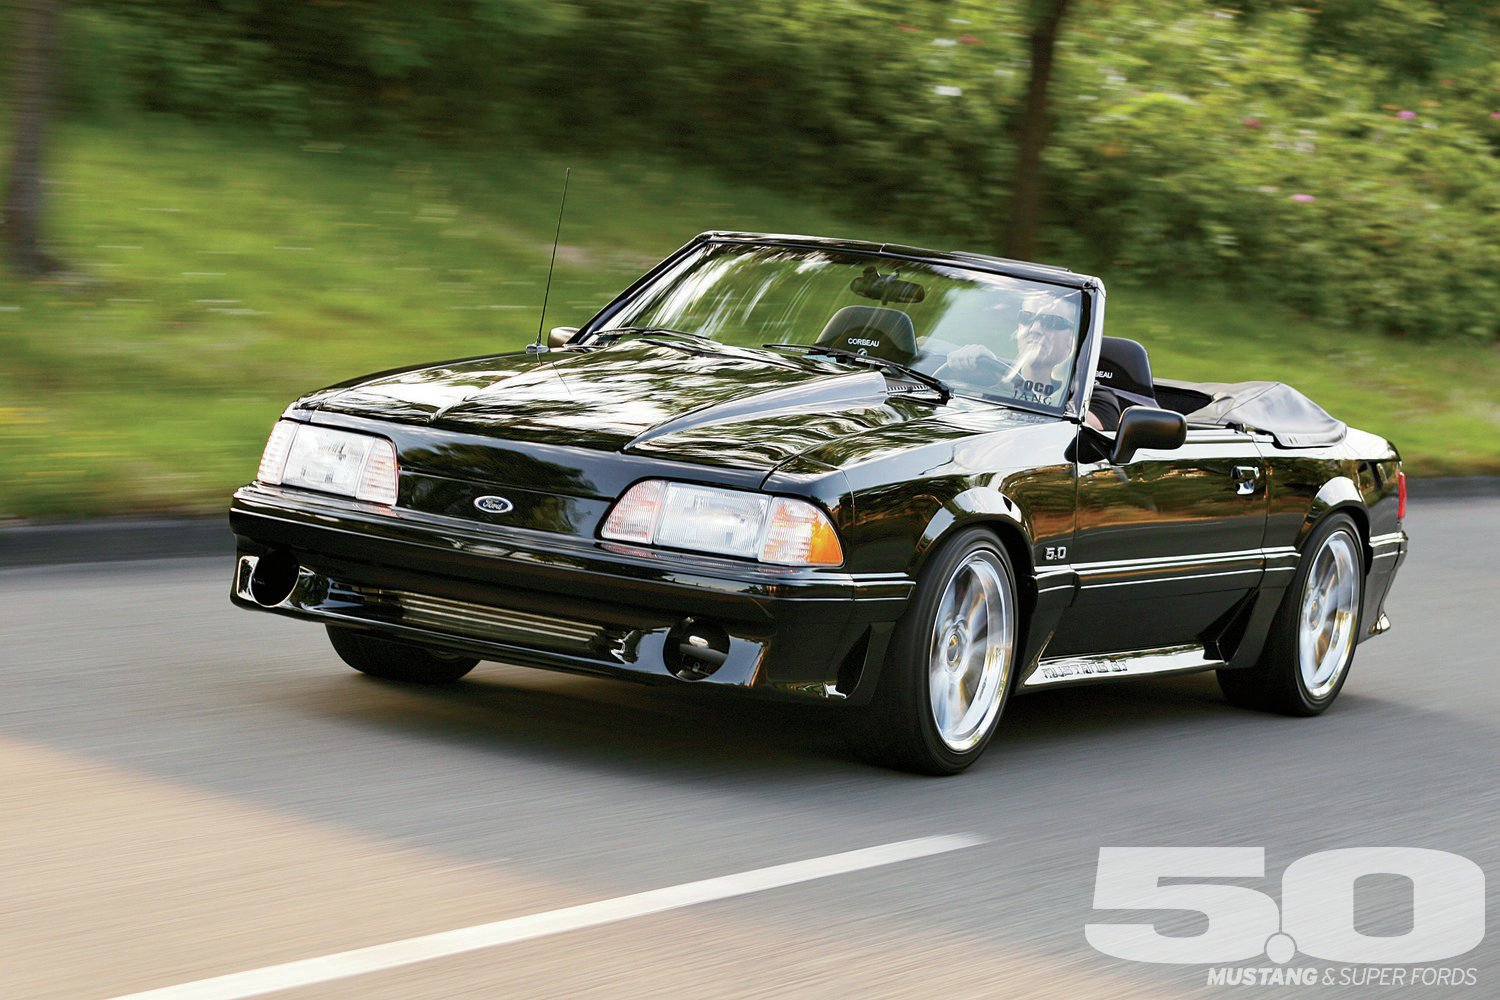 1991 Ford Mustang #26